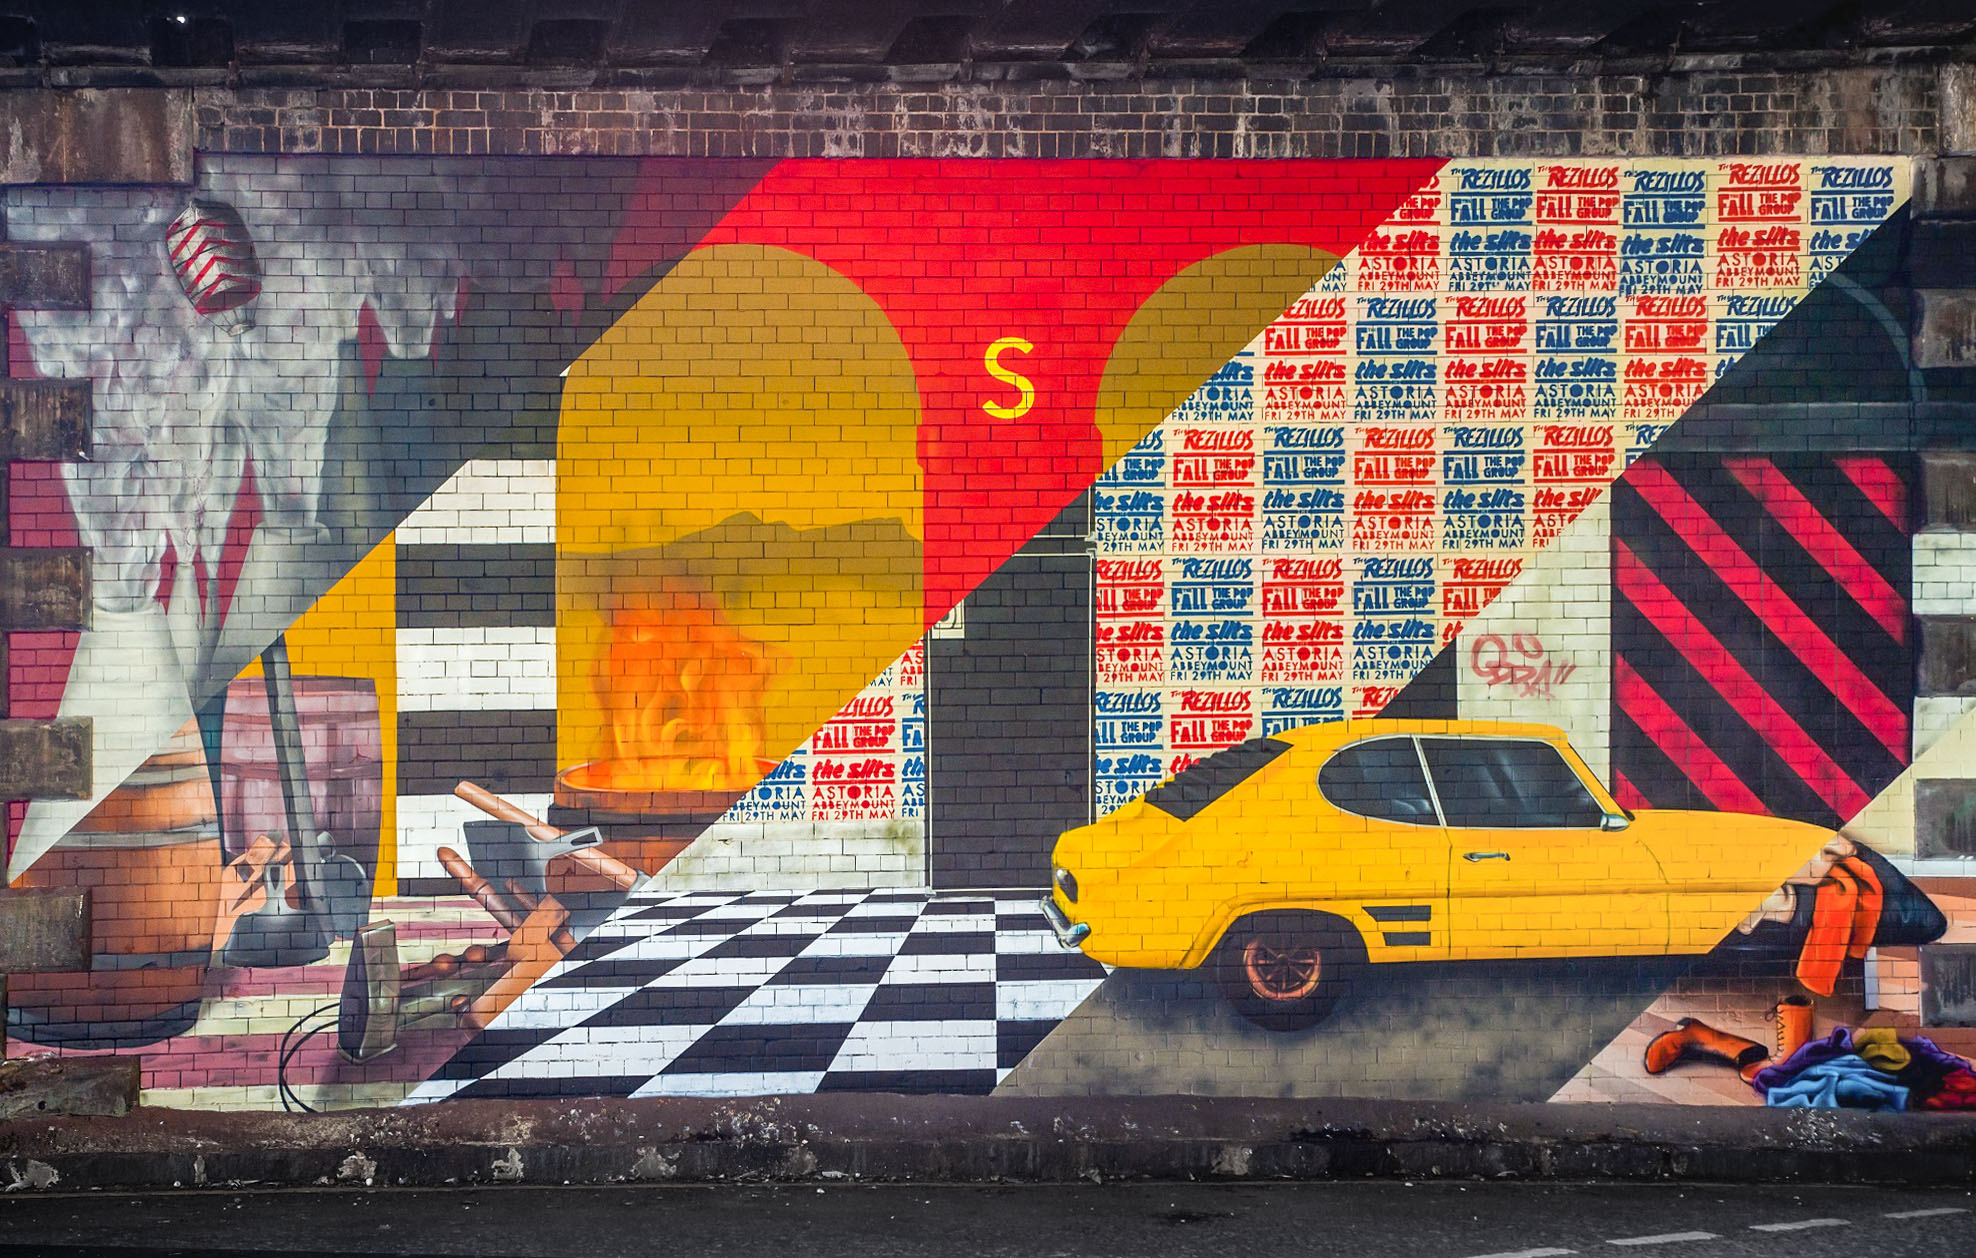 Brightly coloured mural on tunnel wall including yellow car